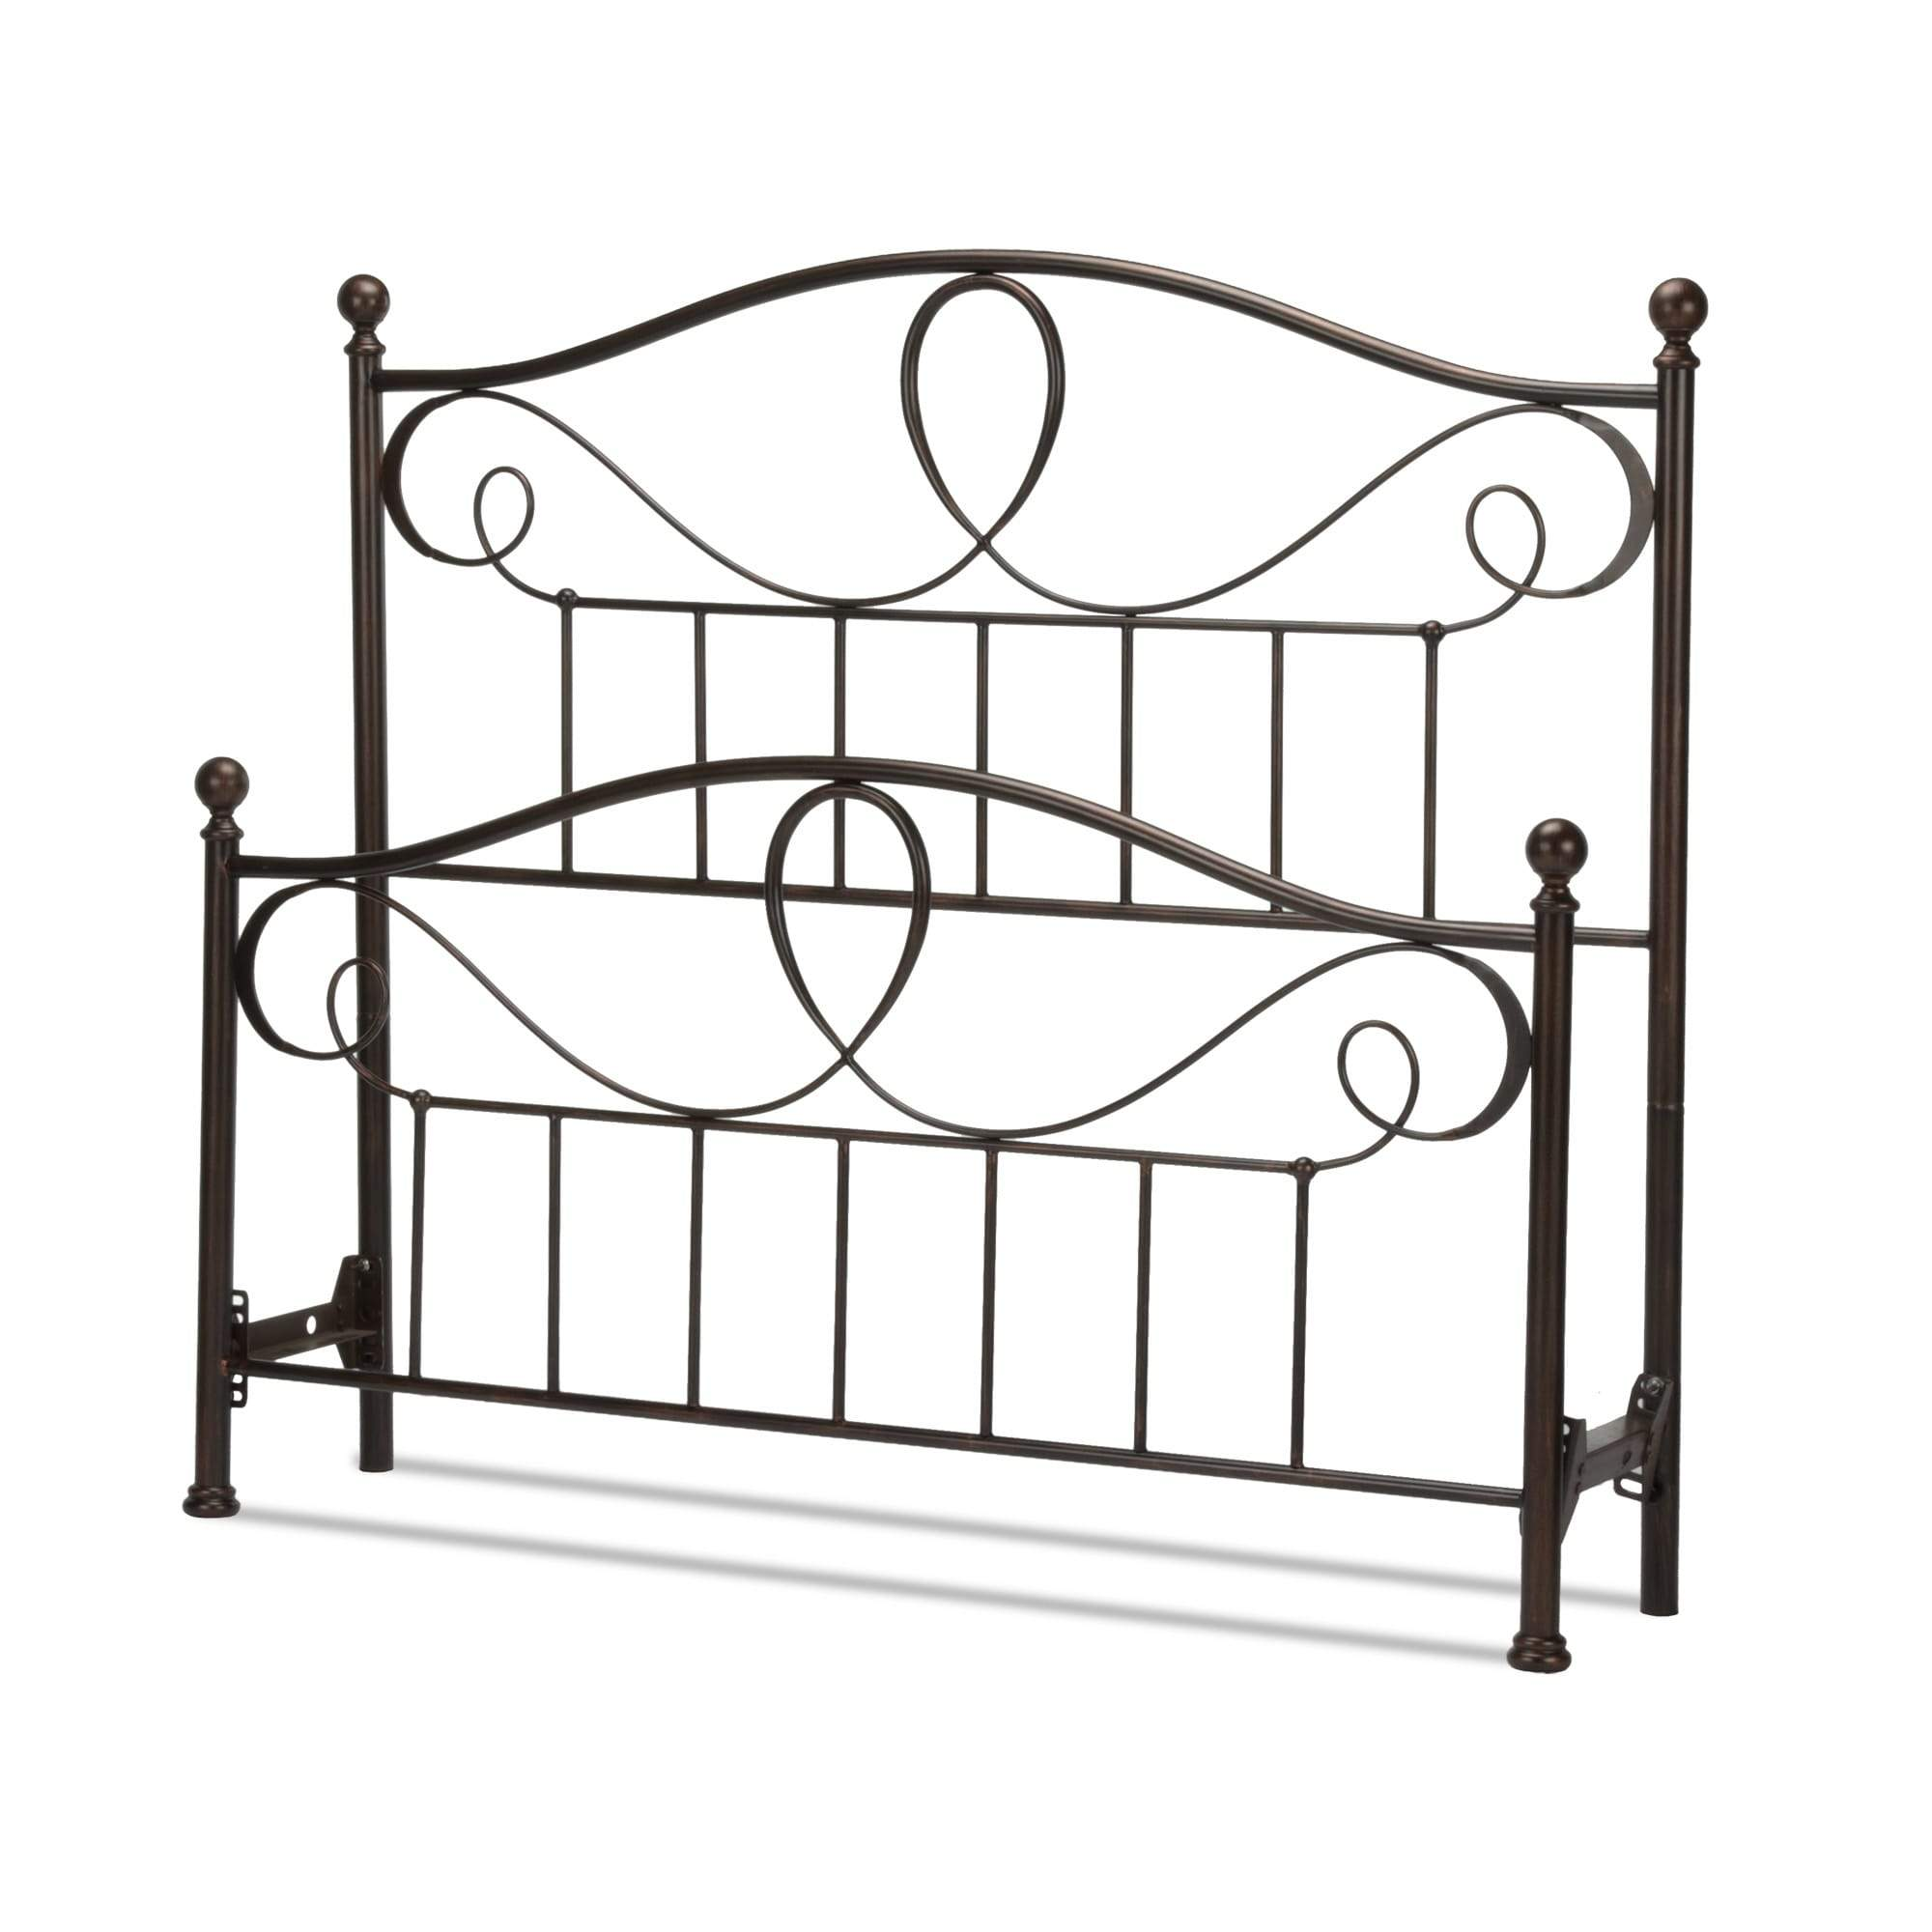 Leggett & Platt Sylvania Bed w/ Metal Curved Grill Design